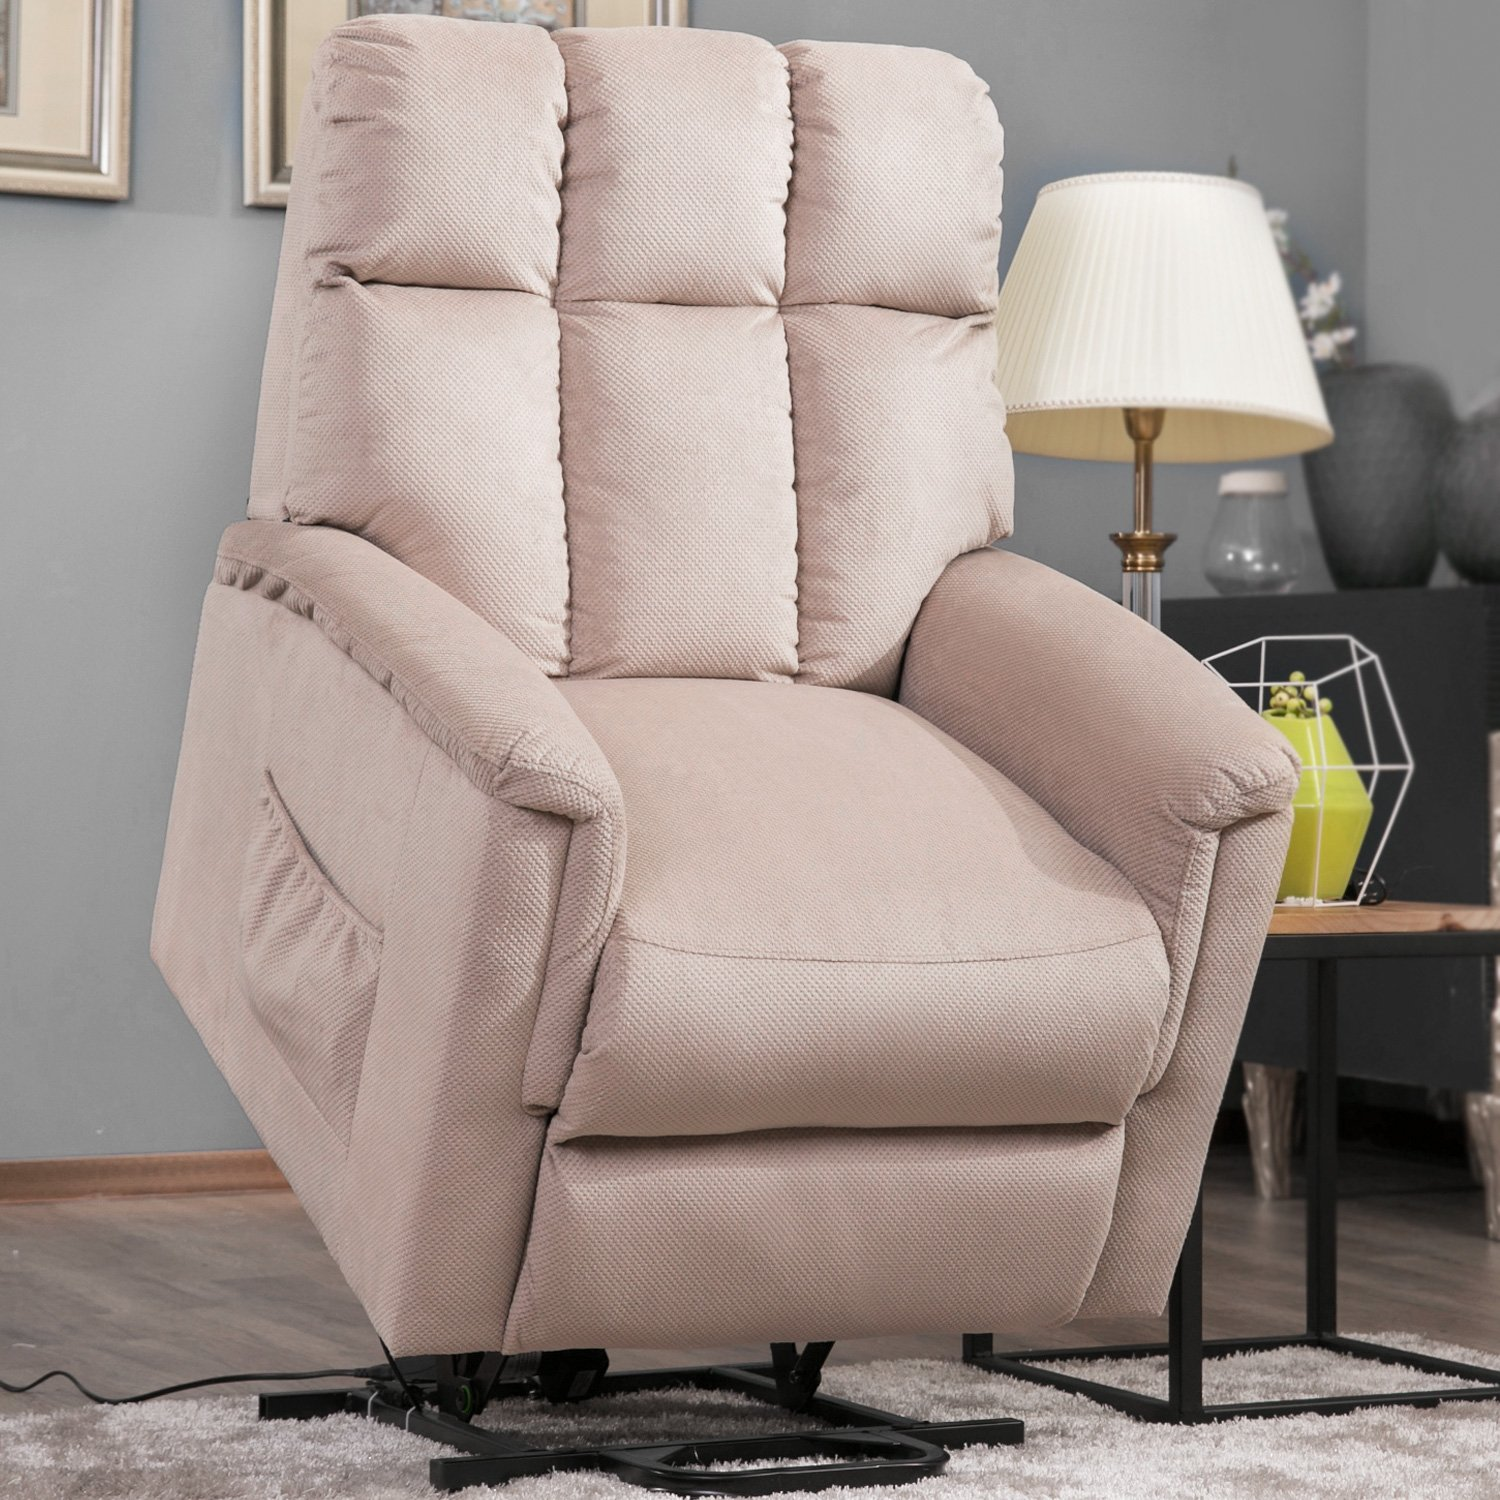 Harper Bright Designs Power Lift Chair Soft Fabric Recliner Lounge Living Room Sofa with Remote Control